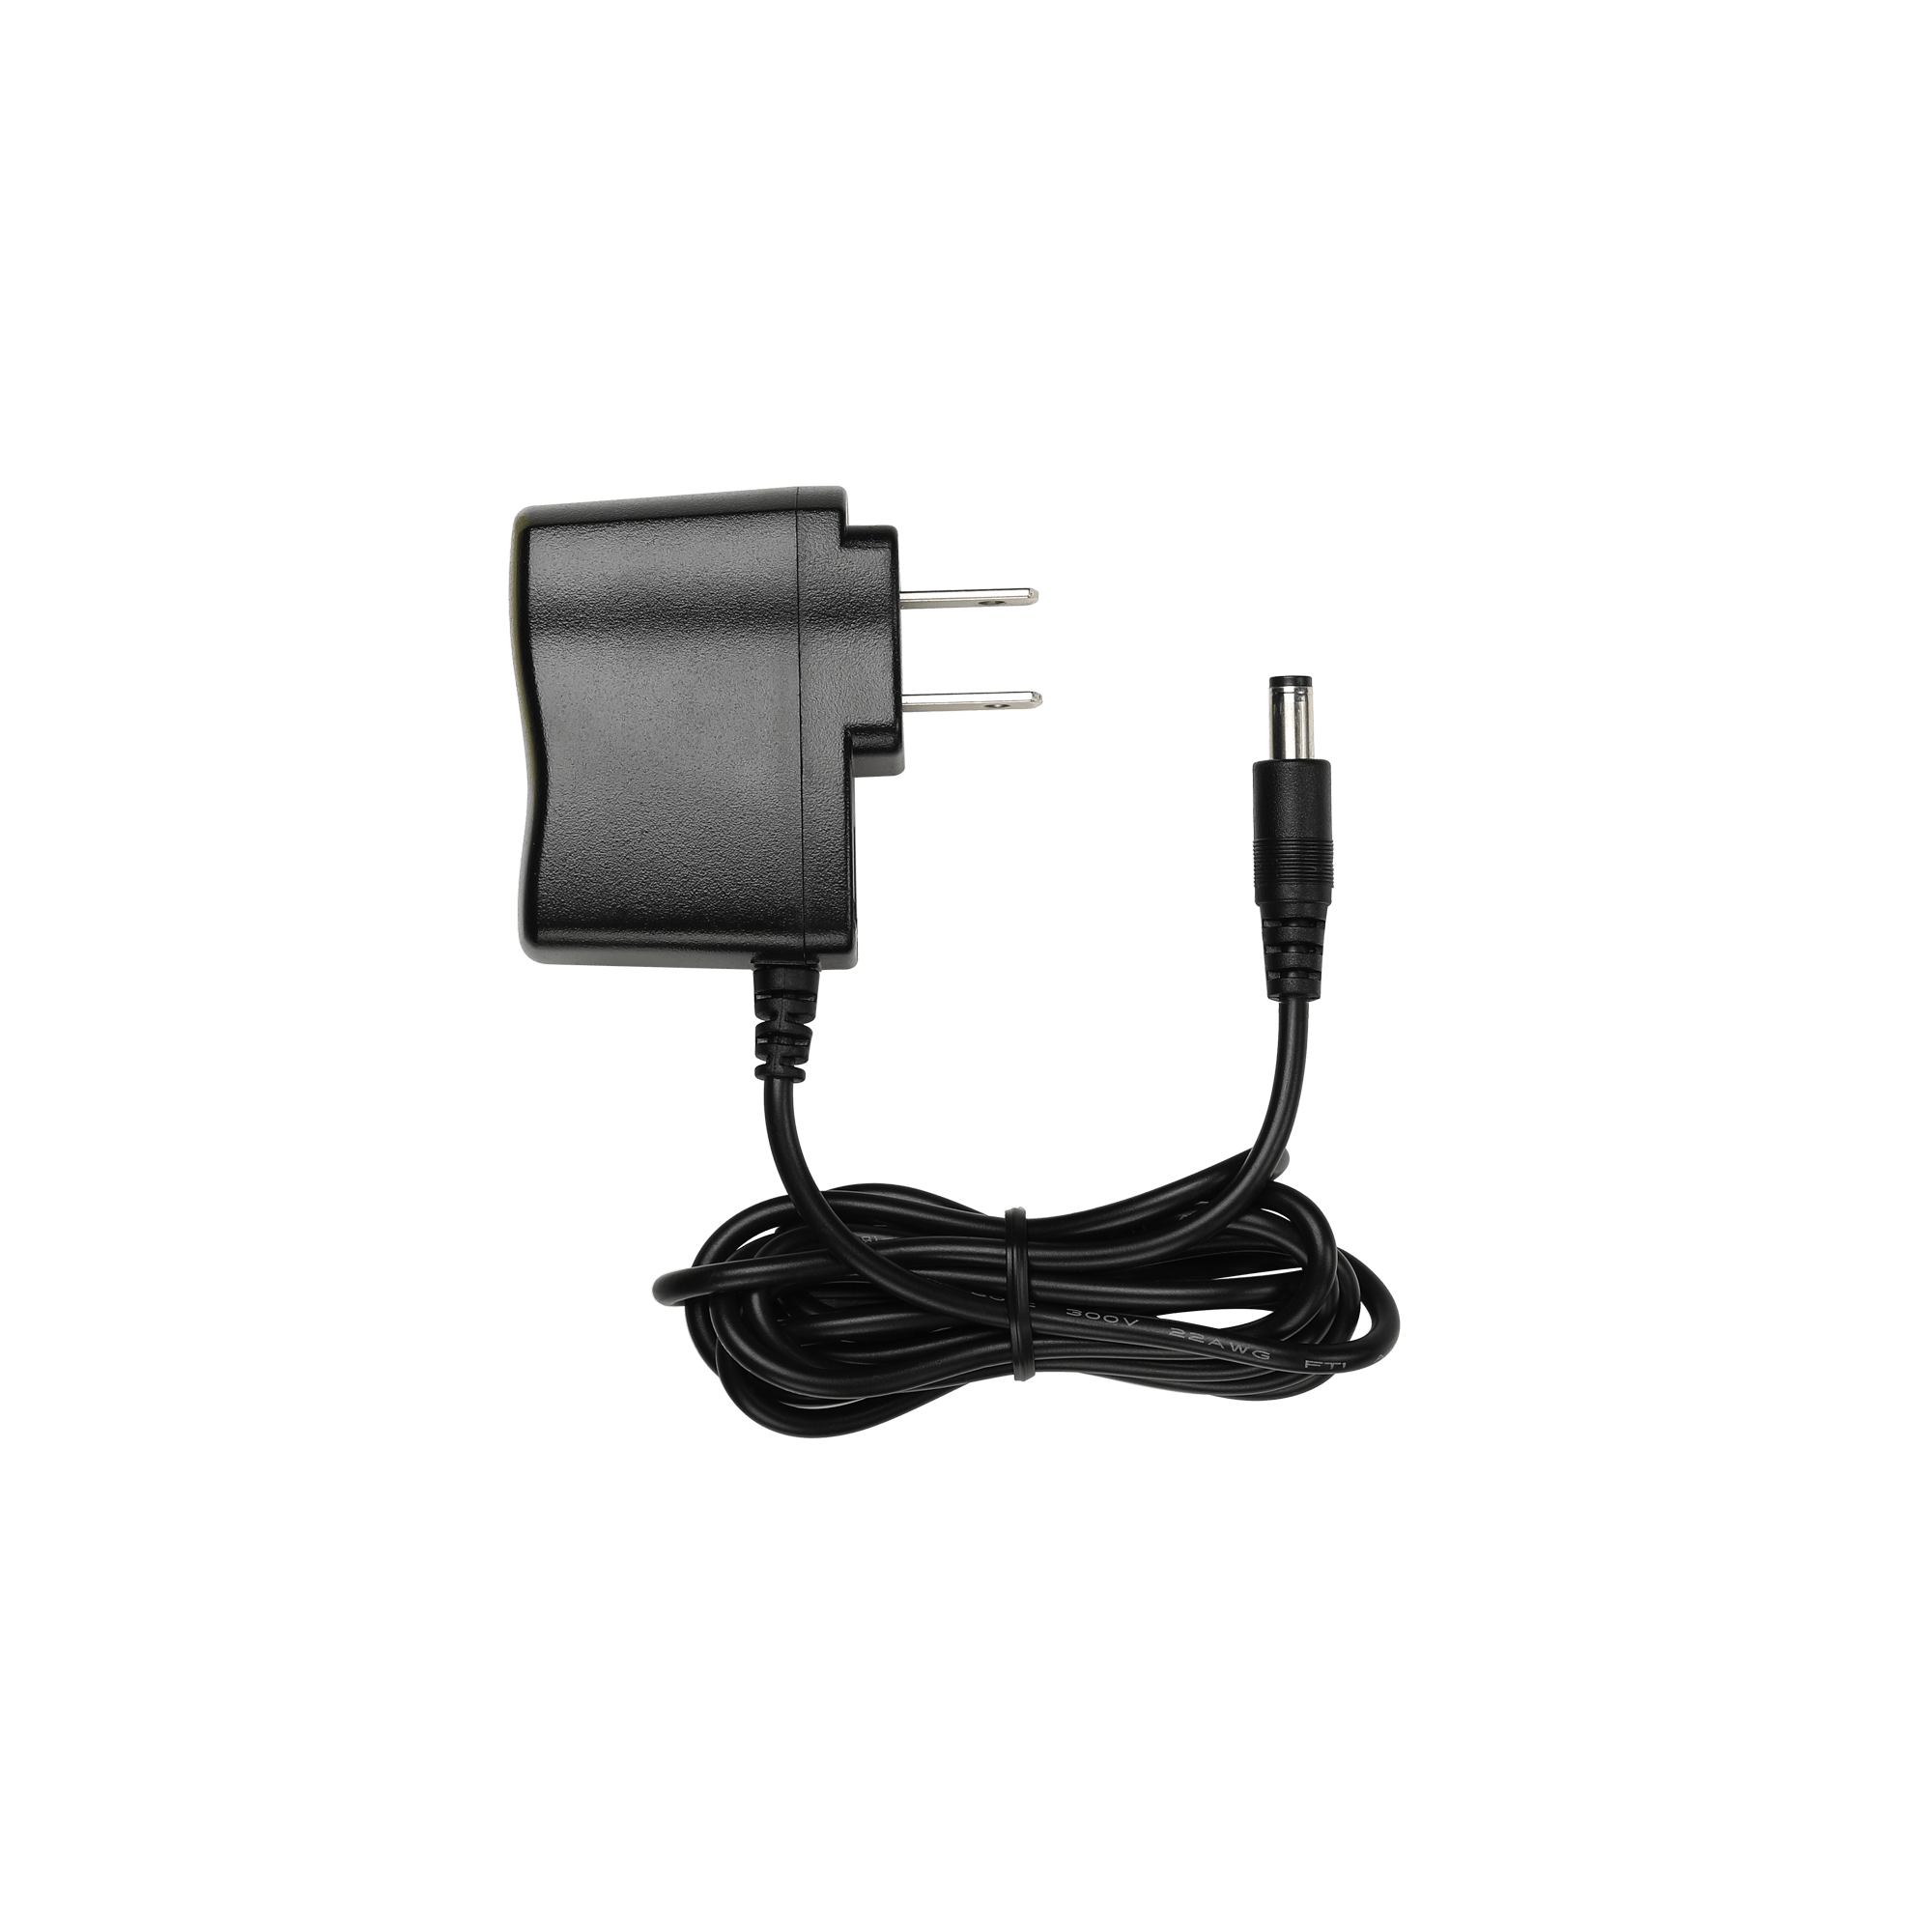 DC5V 1A Switching Power Adapater